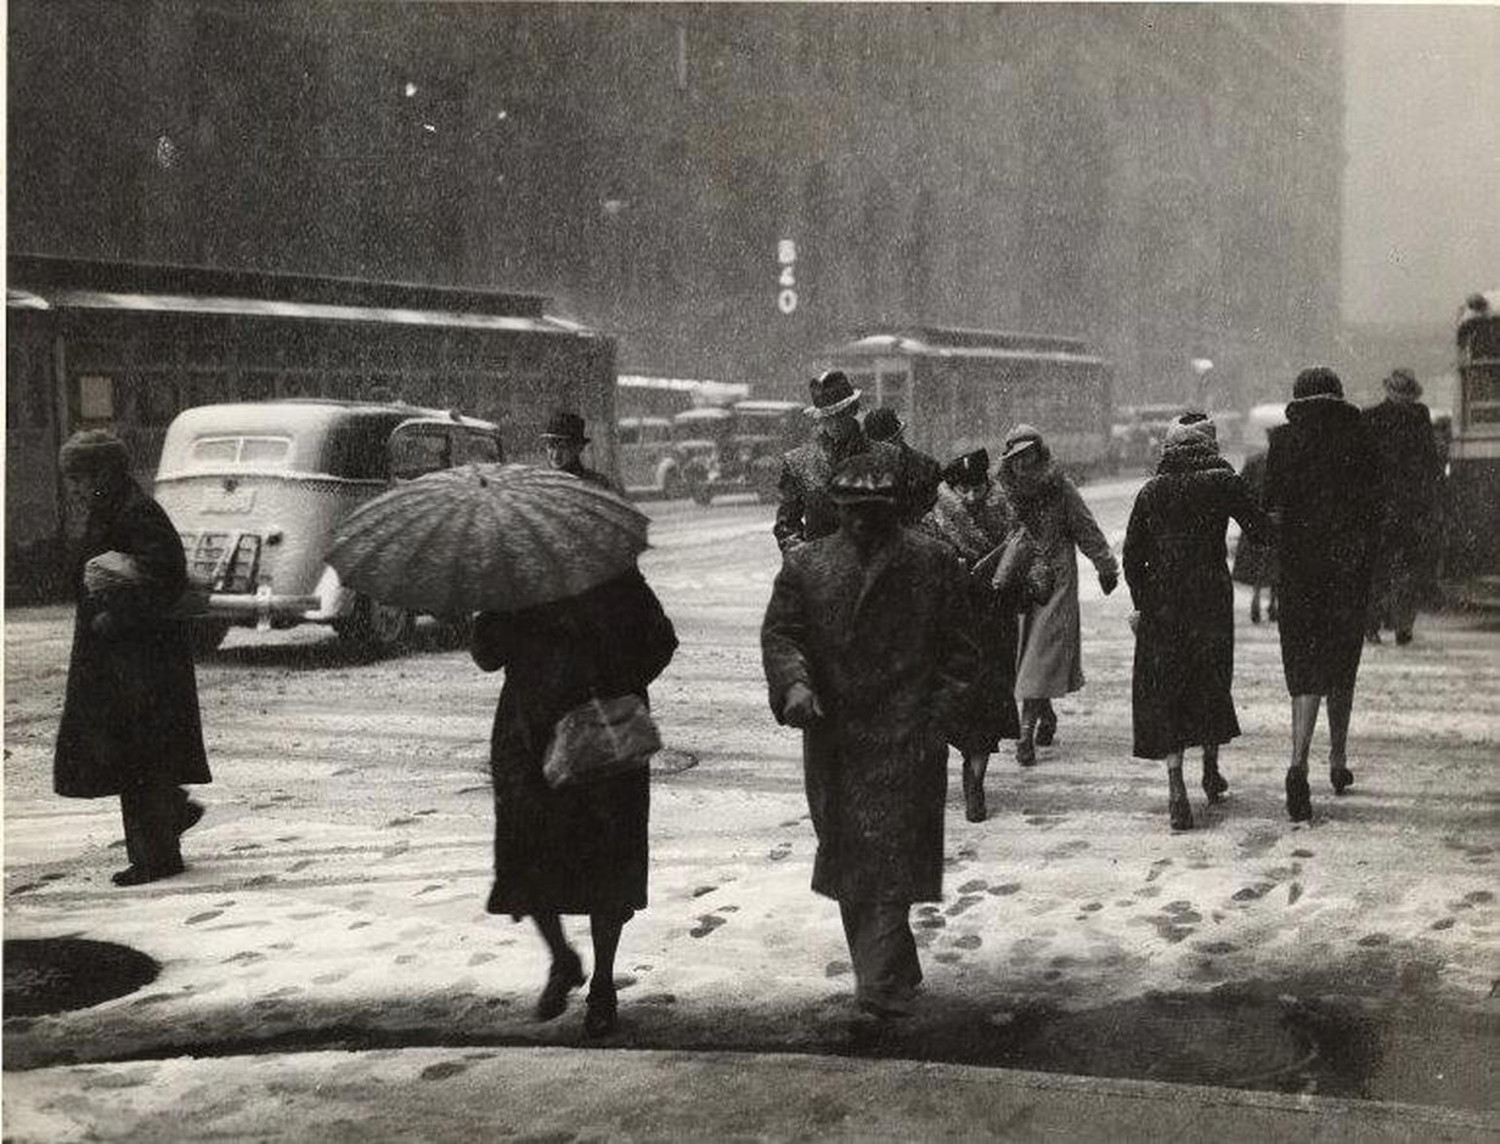 1935 snowstorm effects on midtown Manhattan. Life goes on.